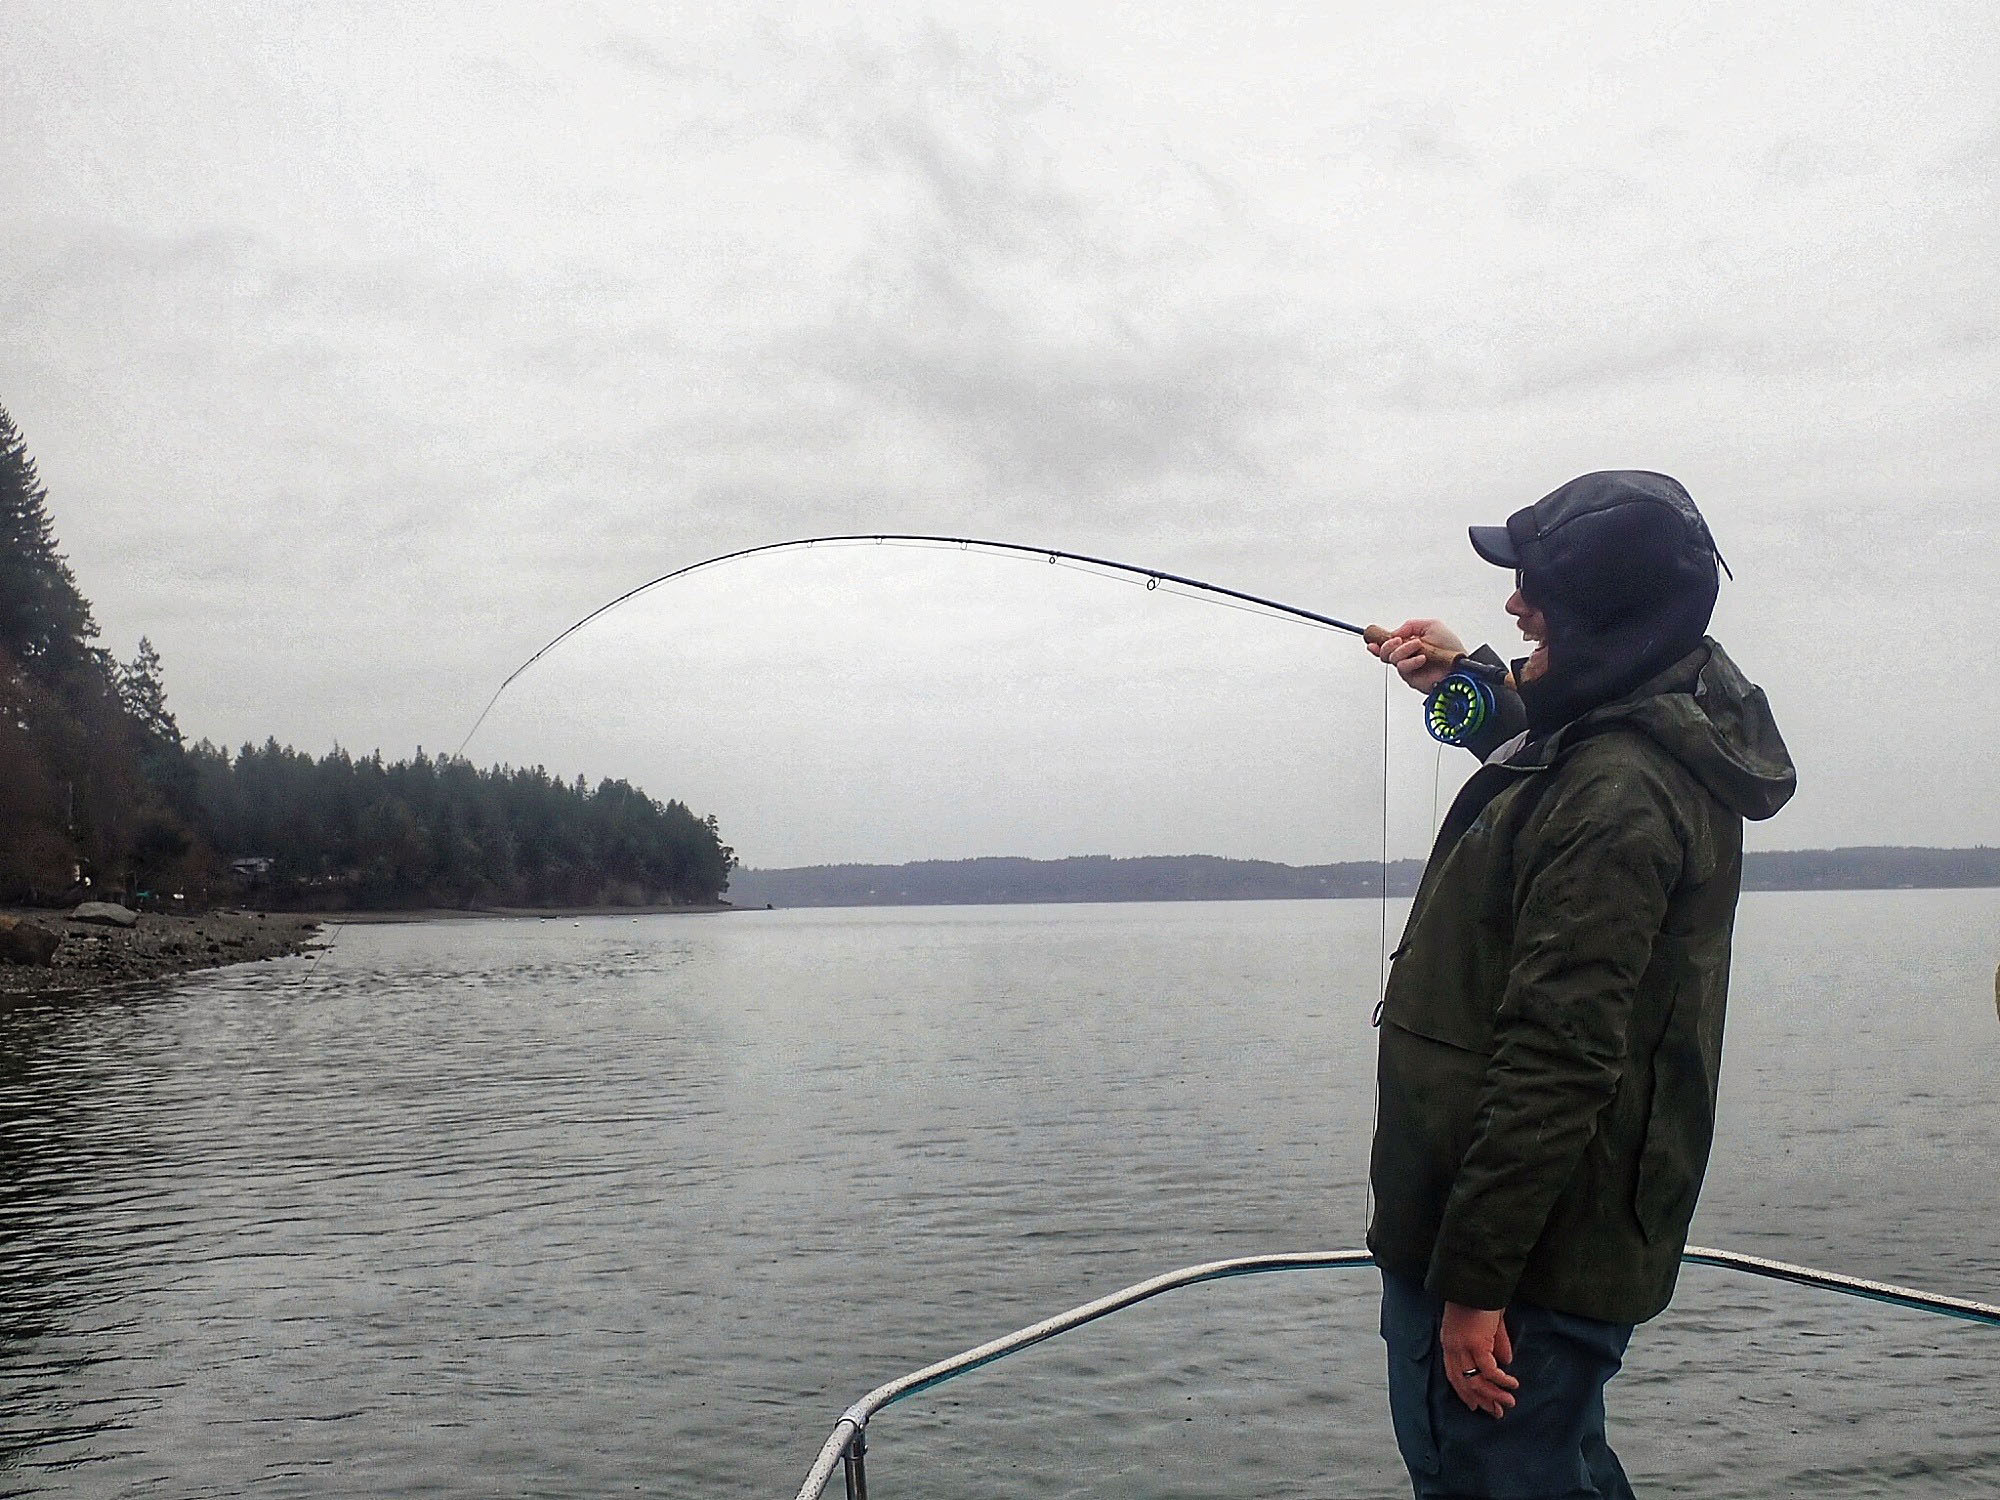 Fly Fishing in Puget Sound, Washington